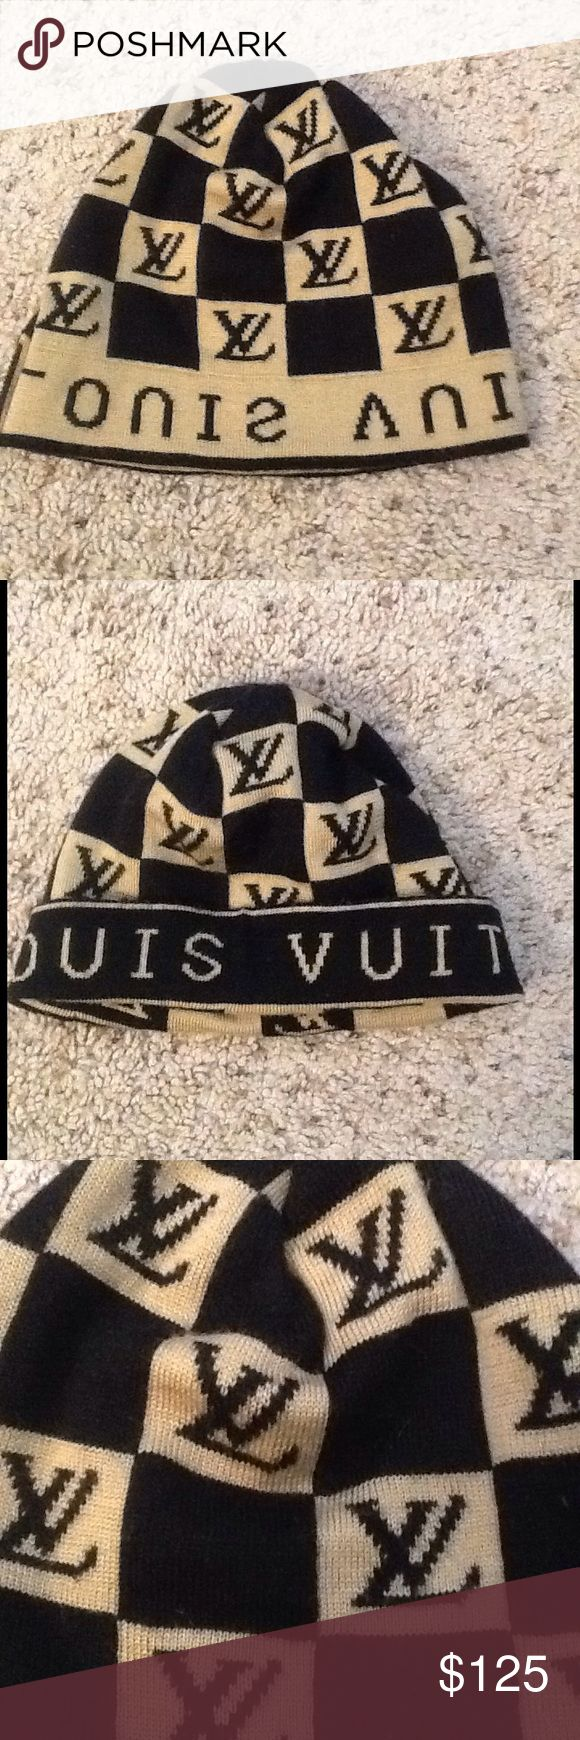 LOUIS VUITTON DAMIER MONOGRAM BEANIE HAT CAP LOUIS VUITTON Damier Monogram Signature brown and tan beanie hat.  Like New condition.  Great gift!  Will ship right away.  Check out my other designer items Louis Vuitton Accessories Hats